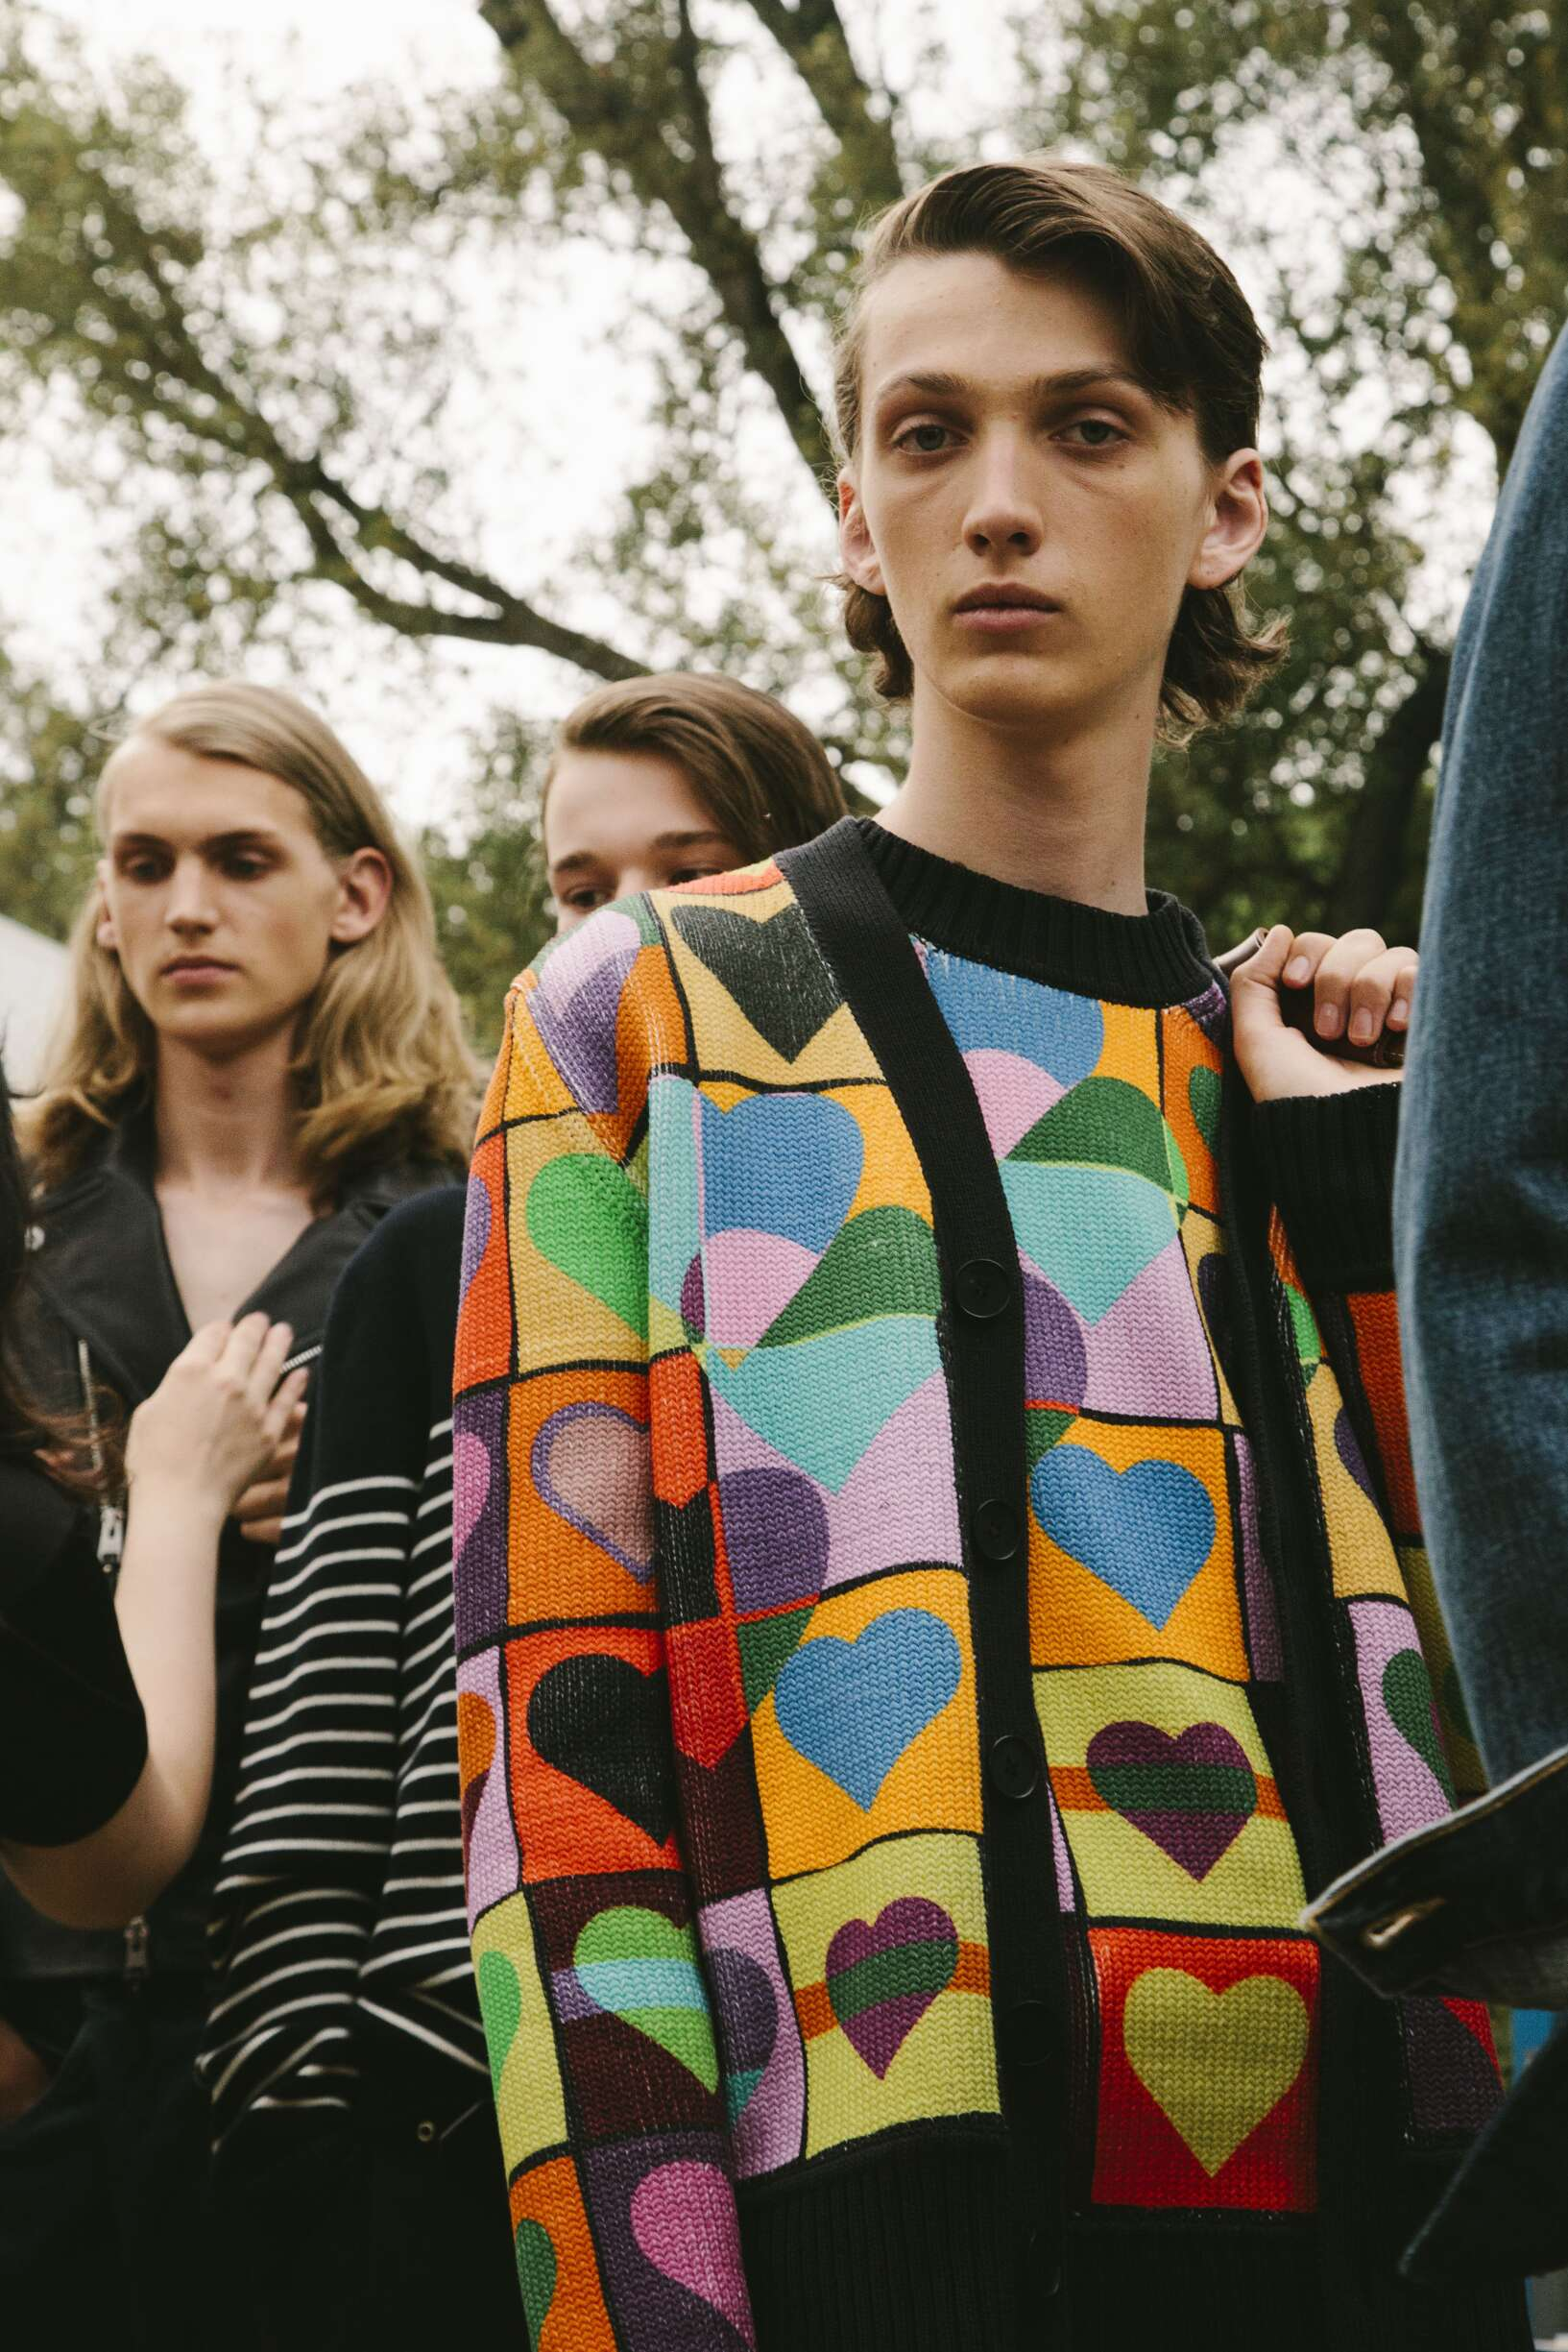 Backstage J.W. Anderson Pitti Uomo 2018 Spring Summer 2018 Collection